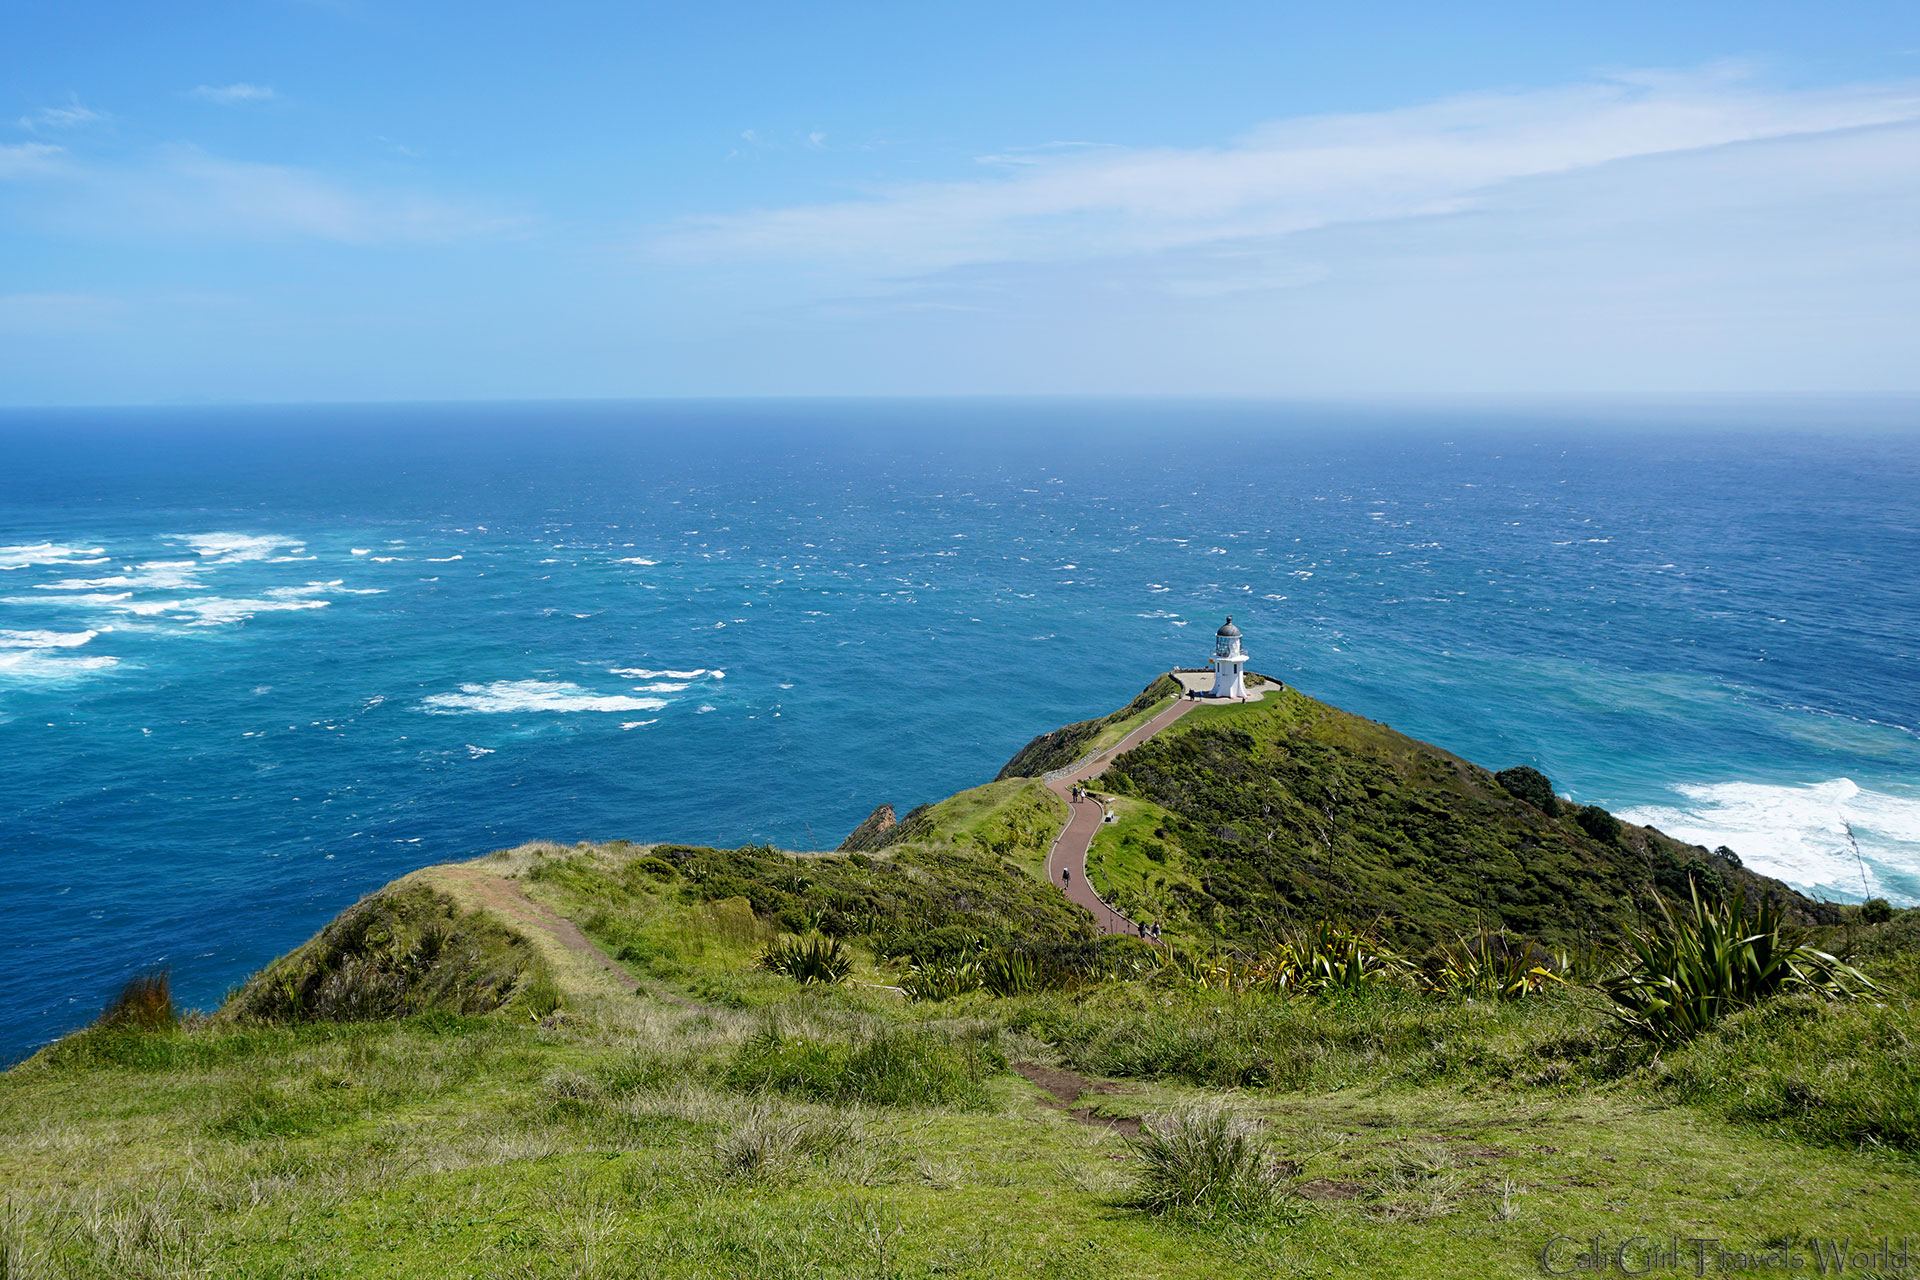 The Cape Reinga Lighthouse at the end of New Zealand.